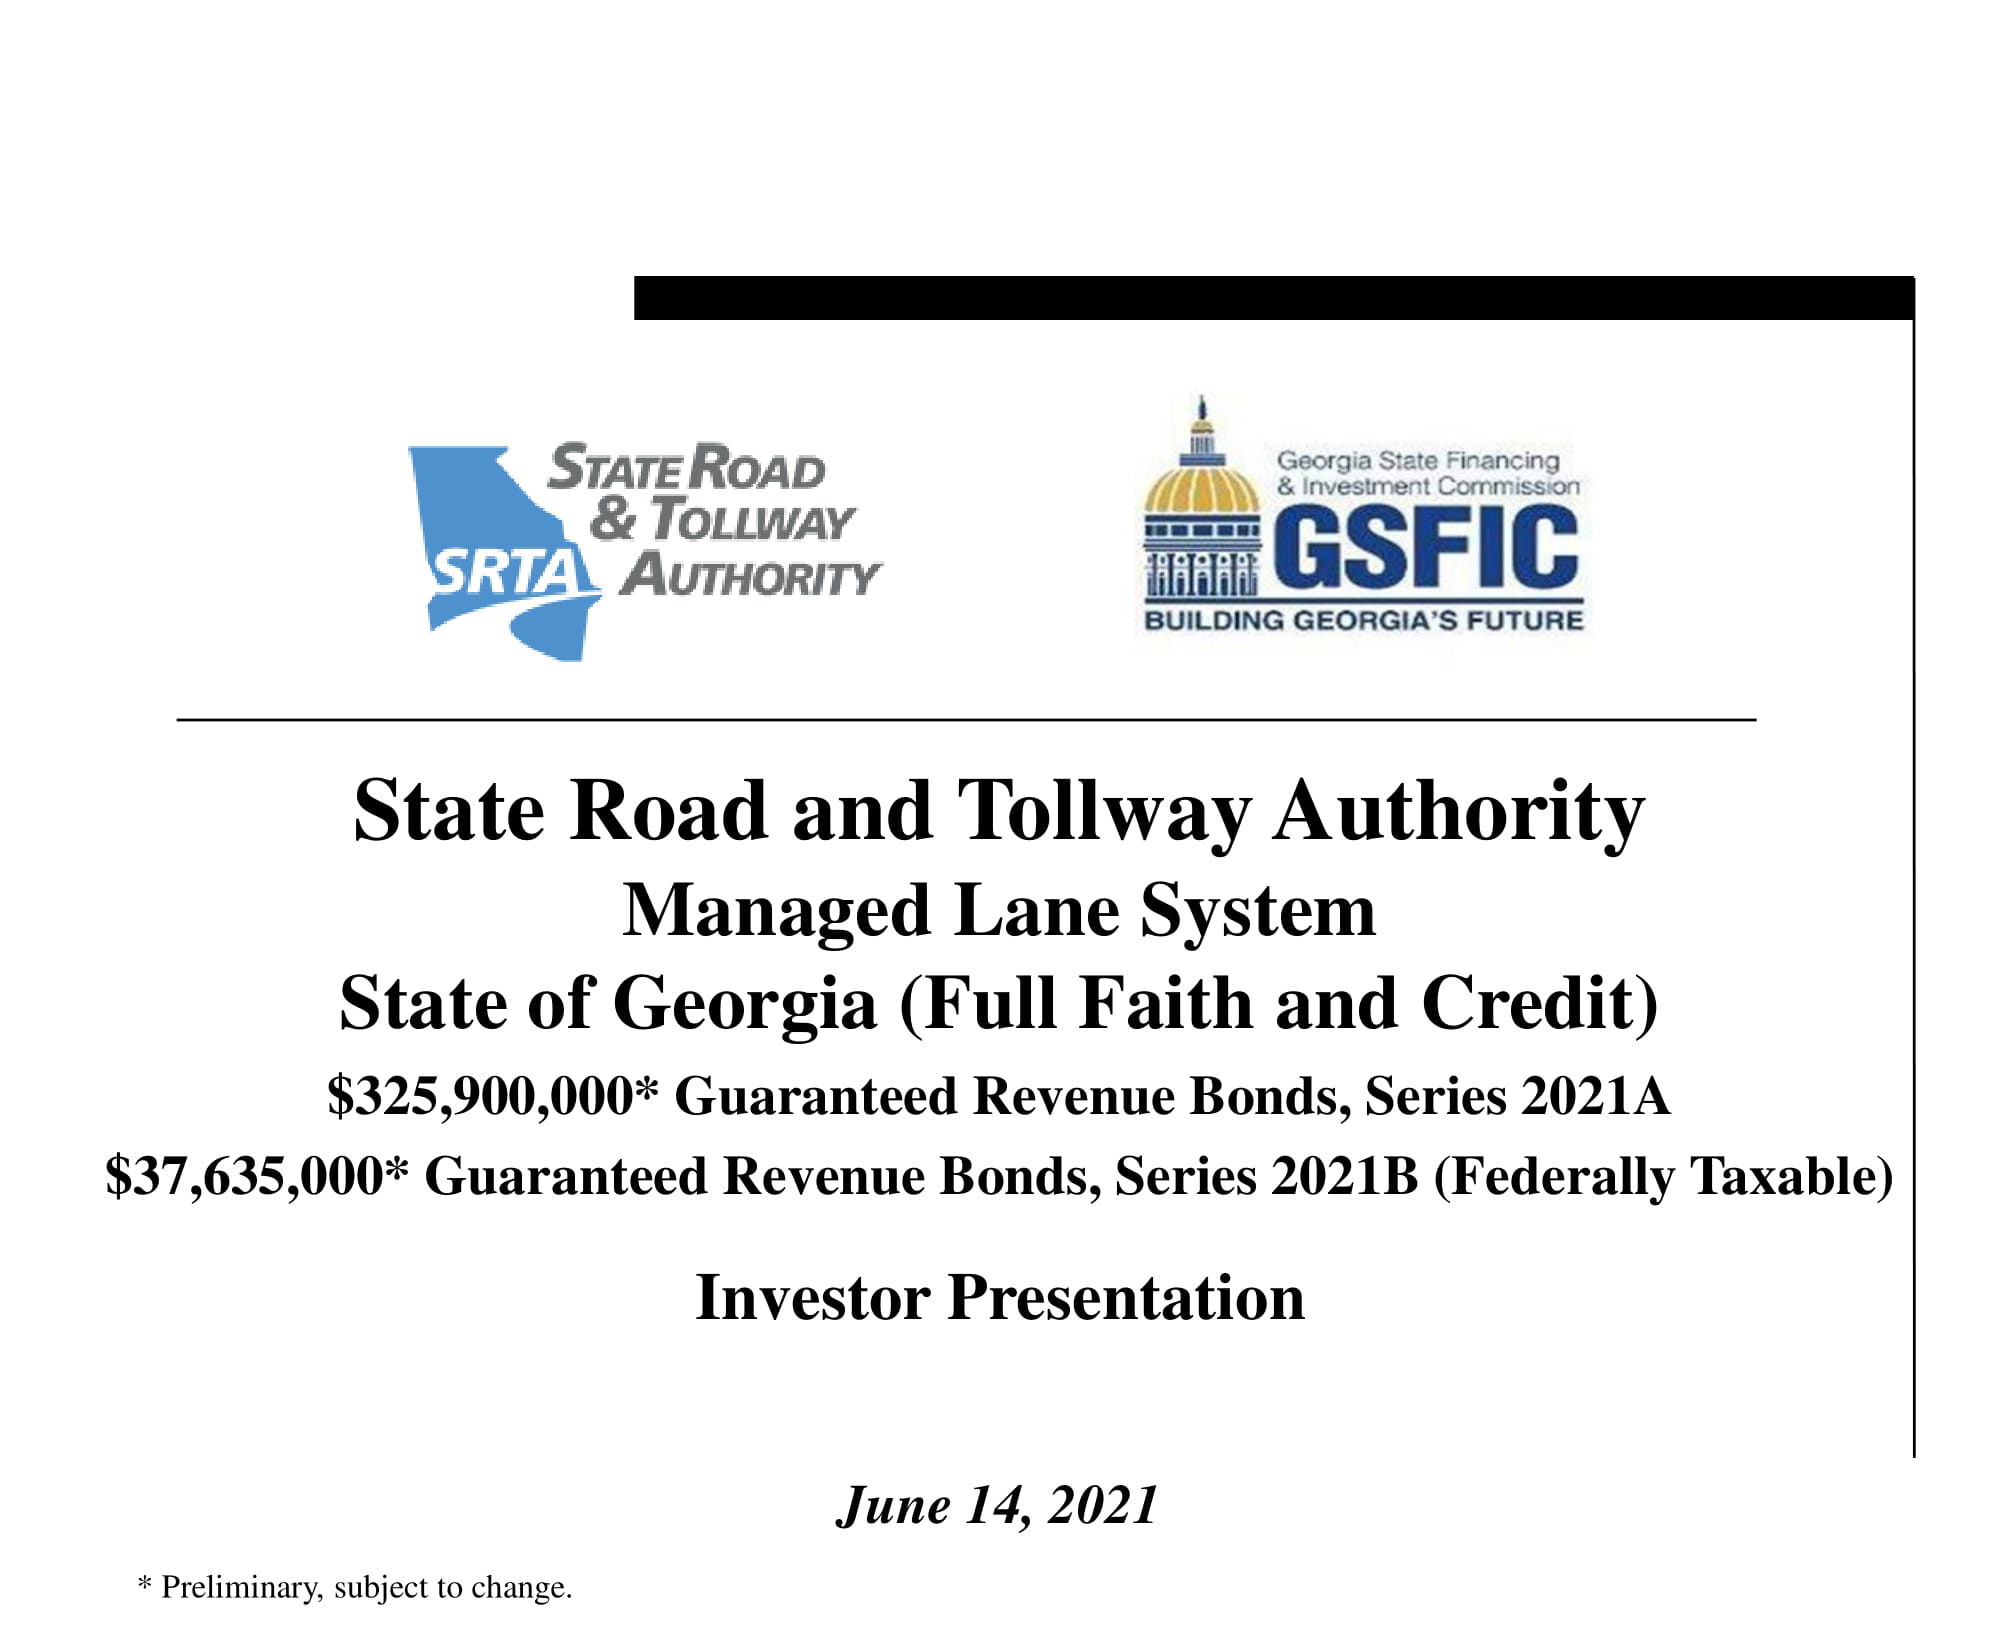 State Road and Tollway Authority Managed Lane System State of Georgia Guaranteed Revenue Bonds, Series 2021A&B